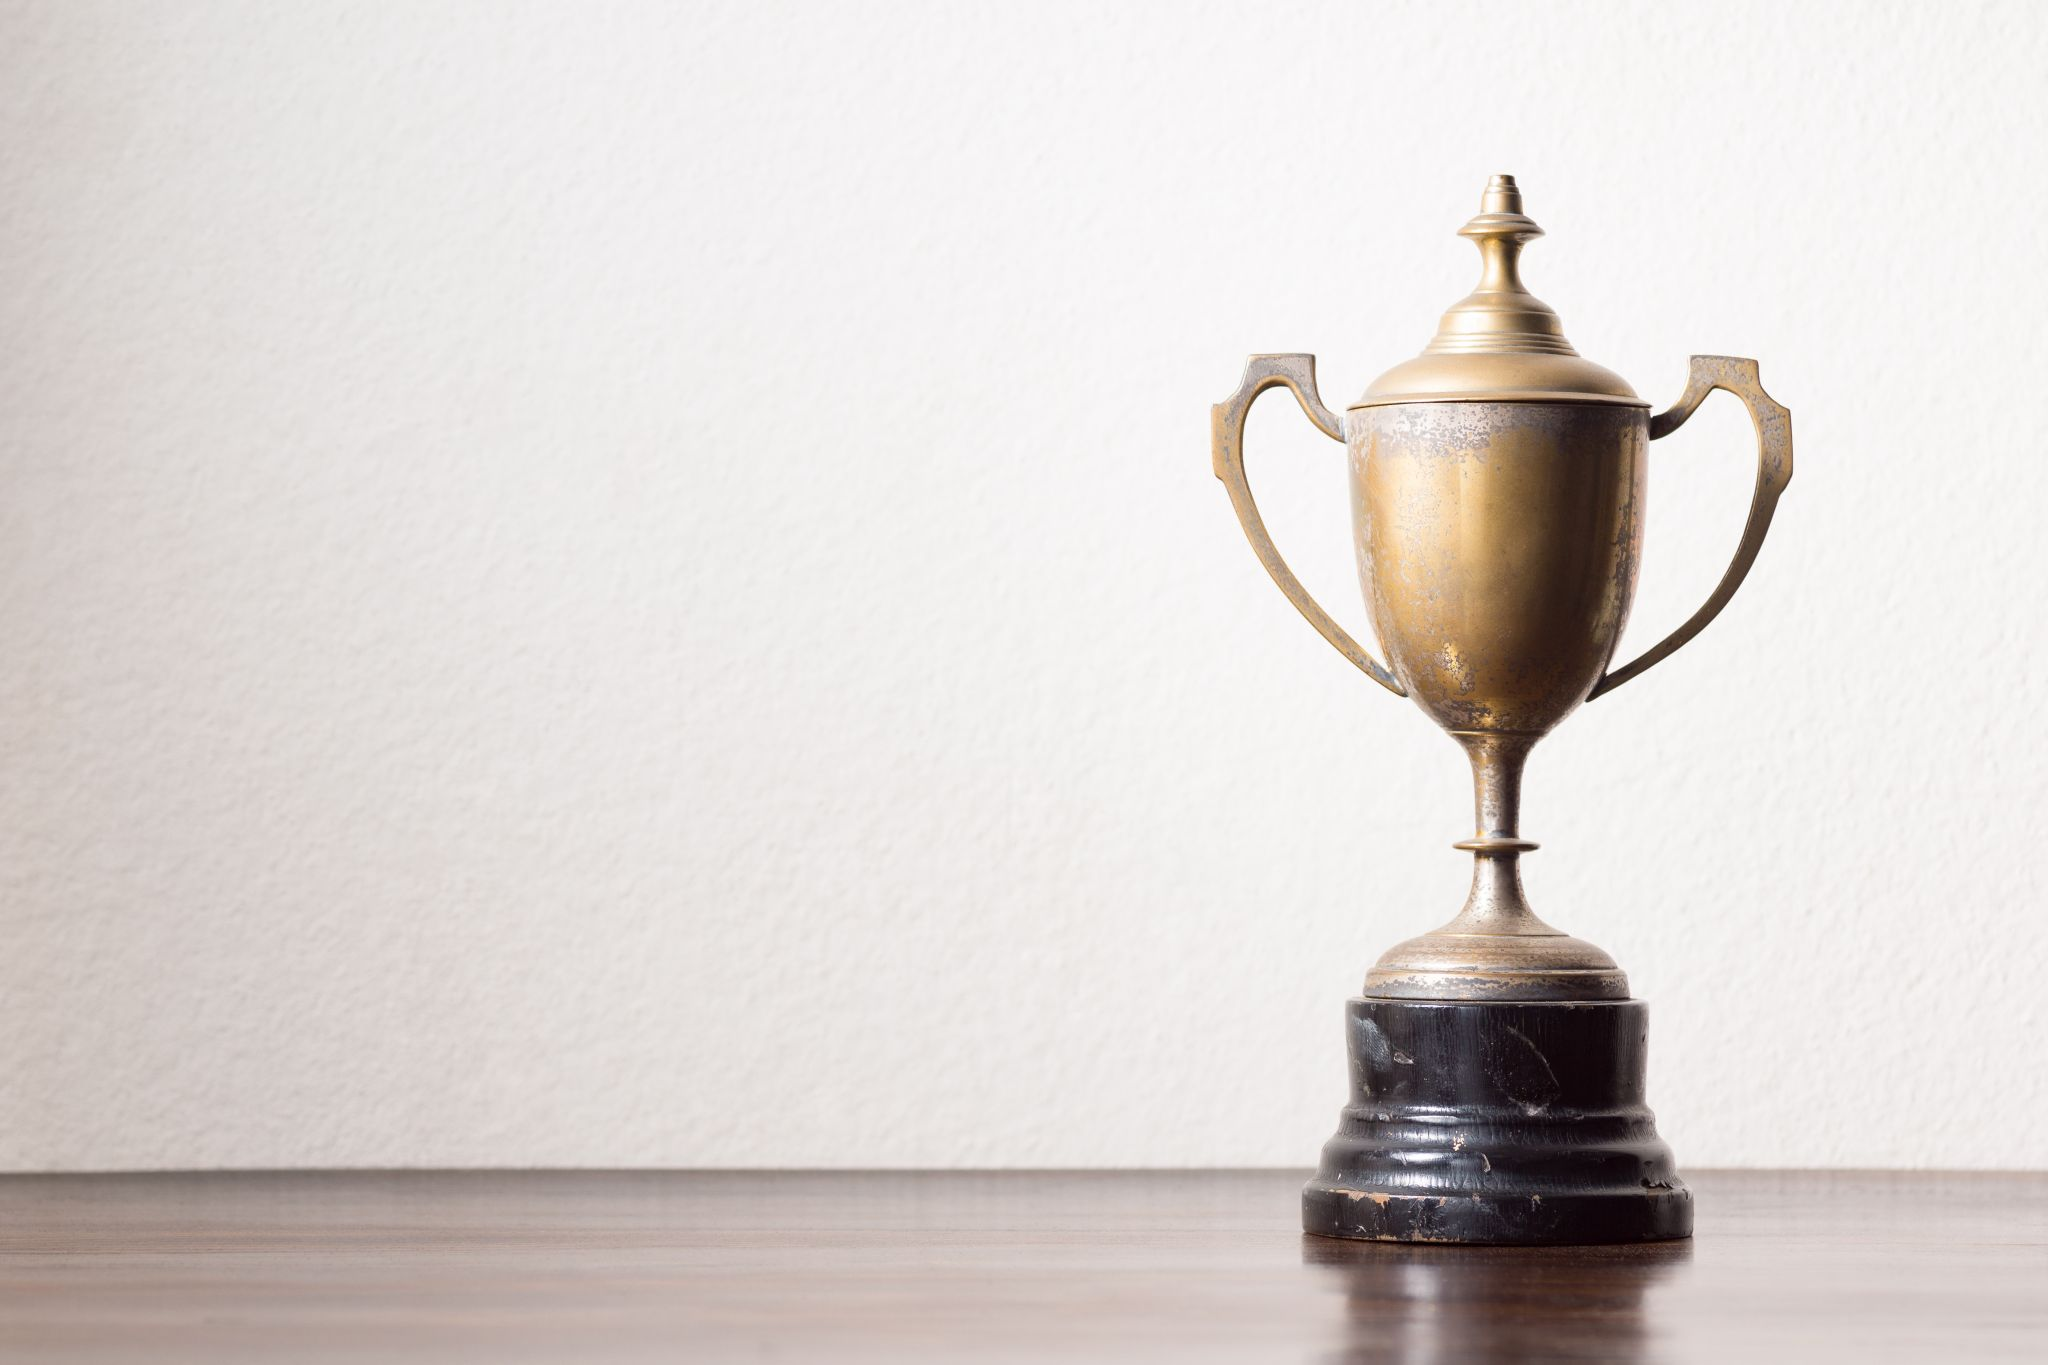 """LLM Student receives a """"Runner-Up Nomination"""" for best pleader at the King's College London Moot Court Competition"""